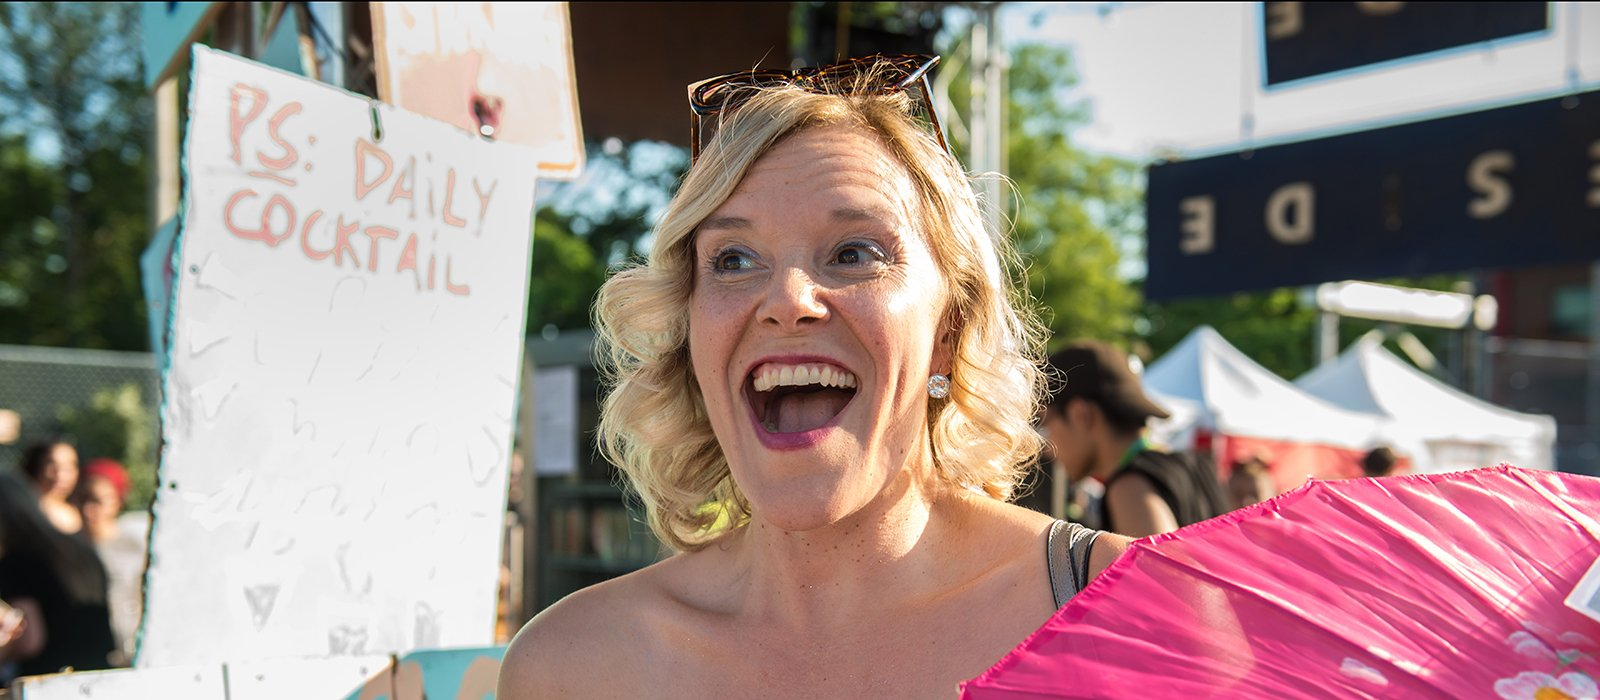 A fringe artist is seen smiling excitedly in the sunshine at the patio festival